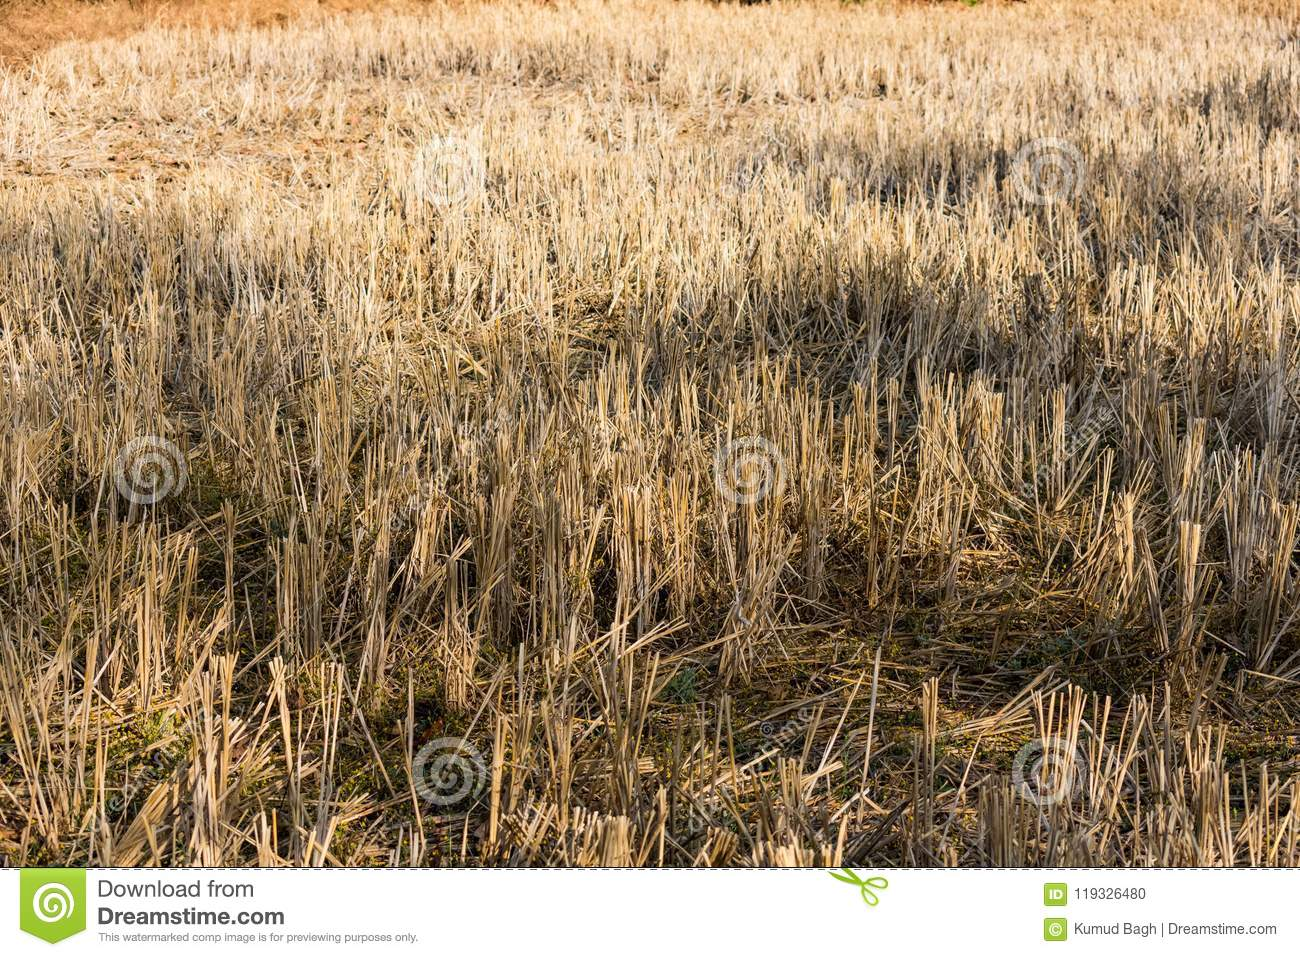 Indian paddy straw at close view looking awesome in a indian paddy farming field.